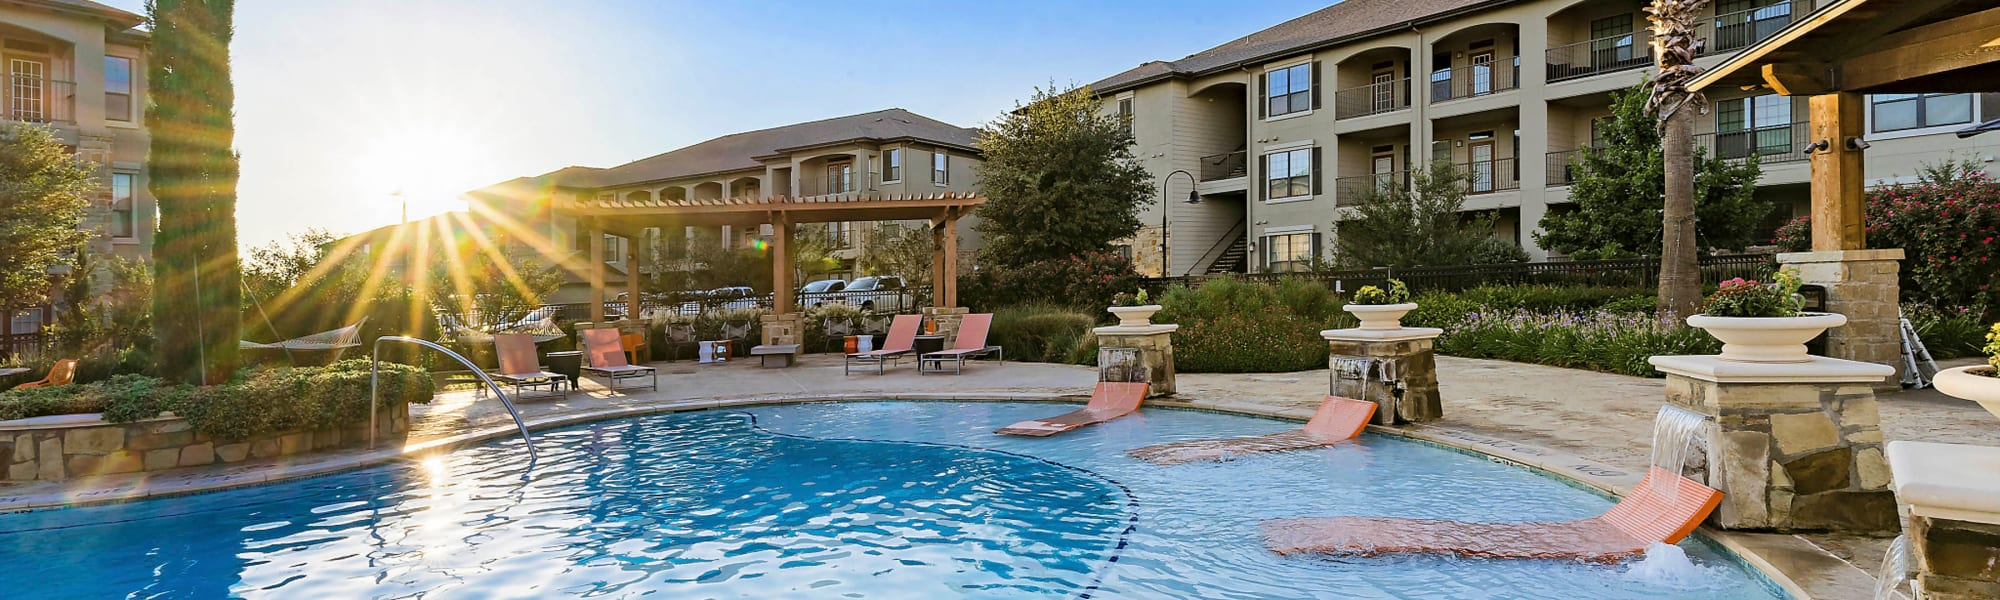 Amenities at Sedona Ranch in Odessa, Texas